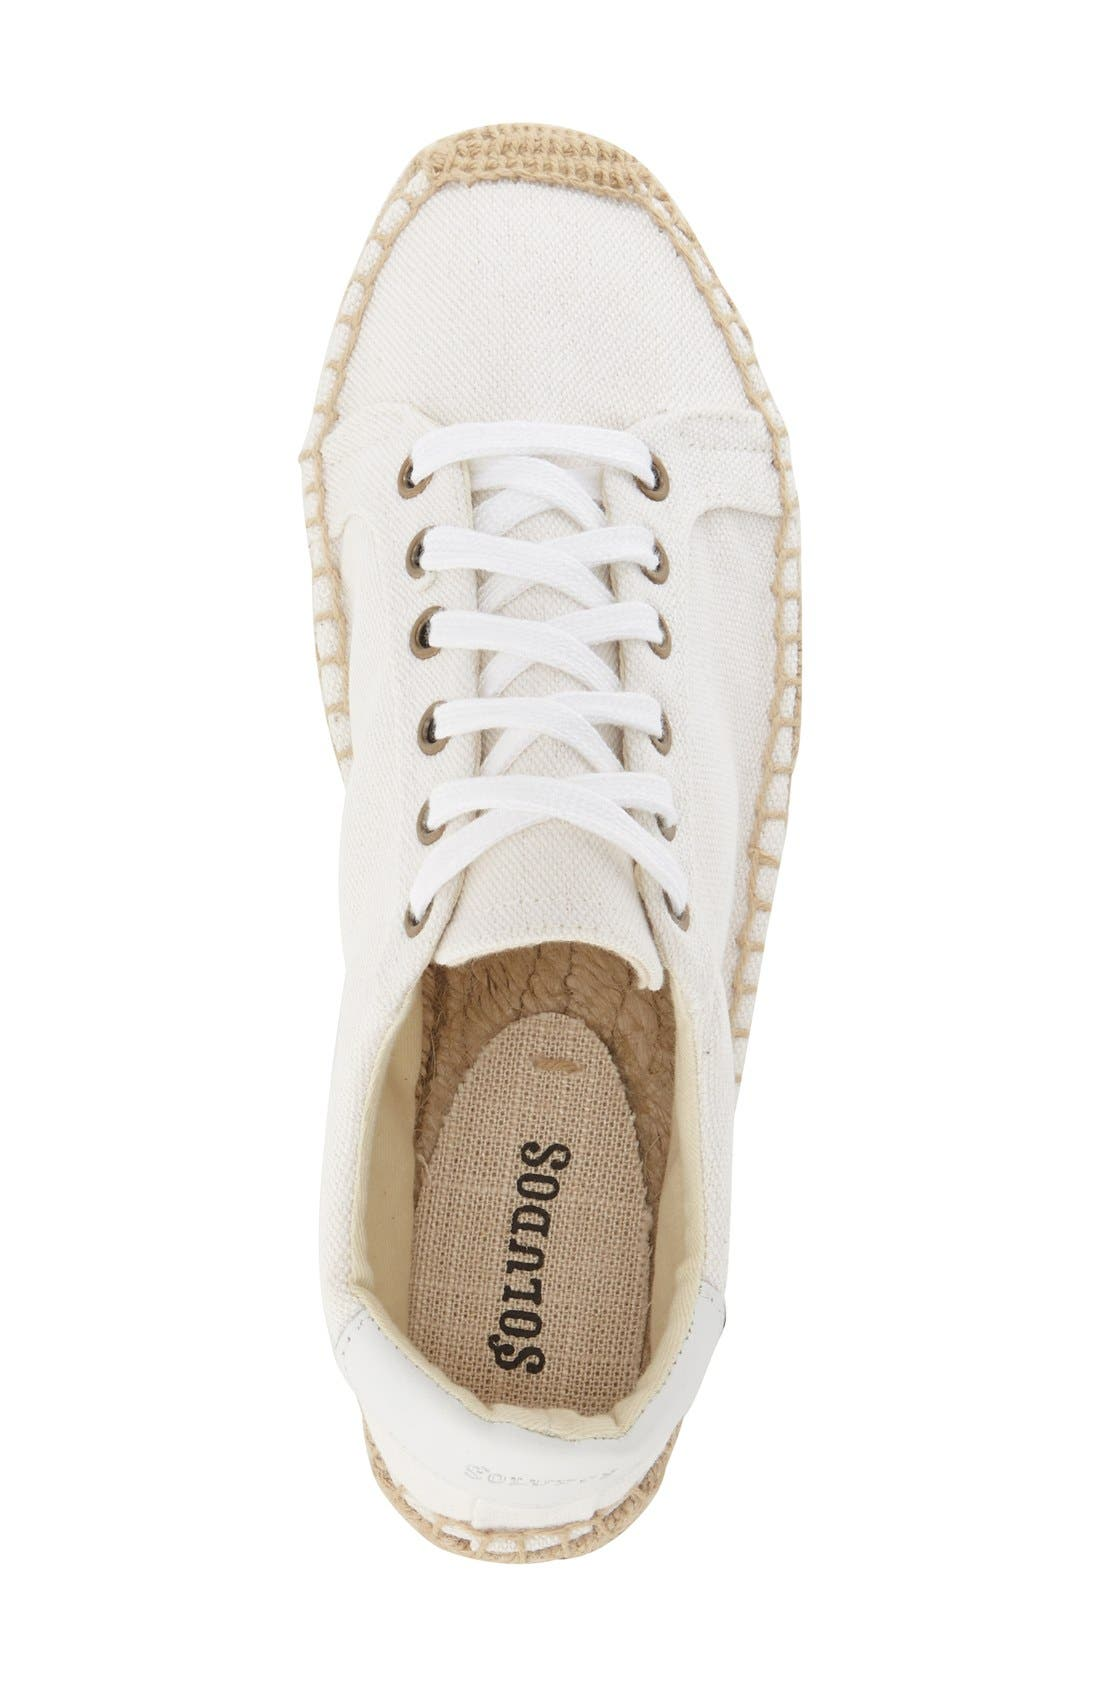 Espadrille Platform Sneaker,                             Alternate thumbnail 3, color,                             Bright White Canvas